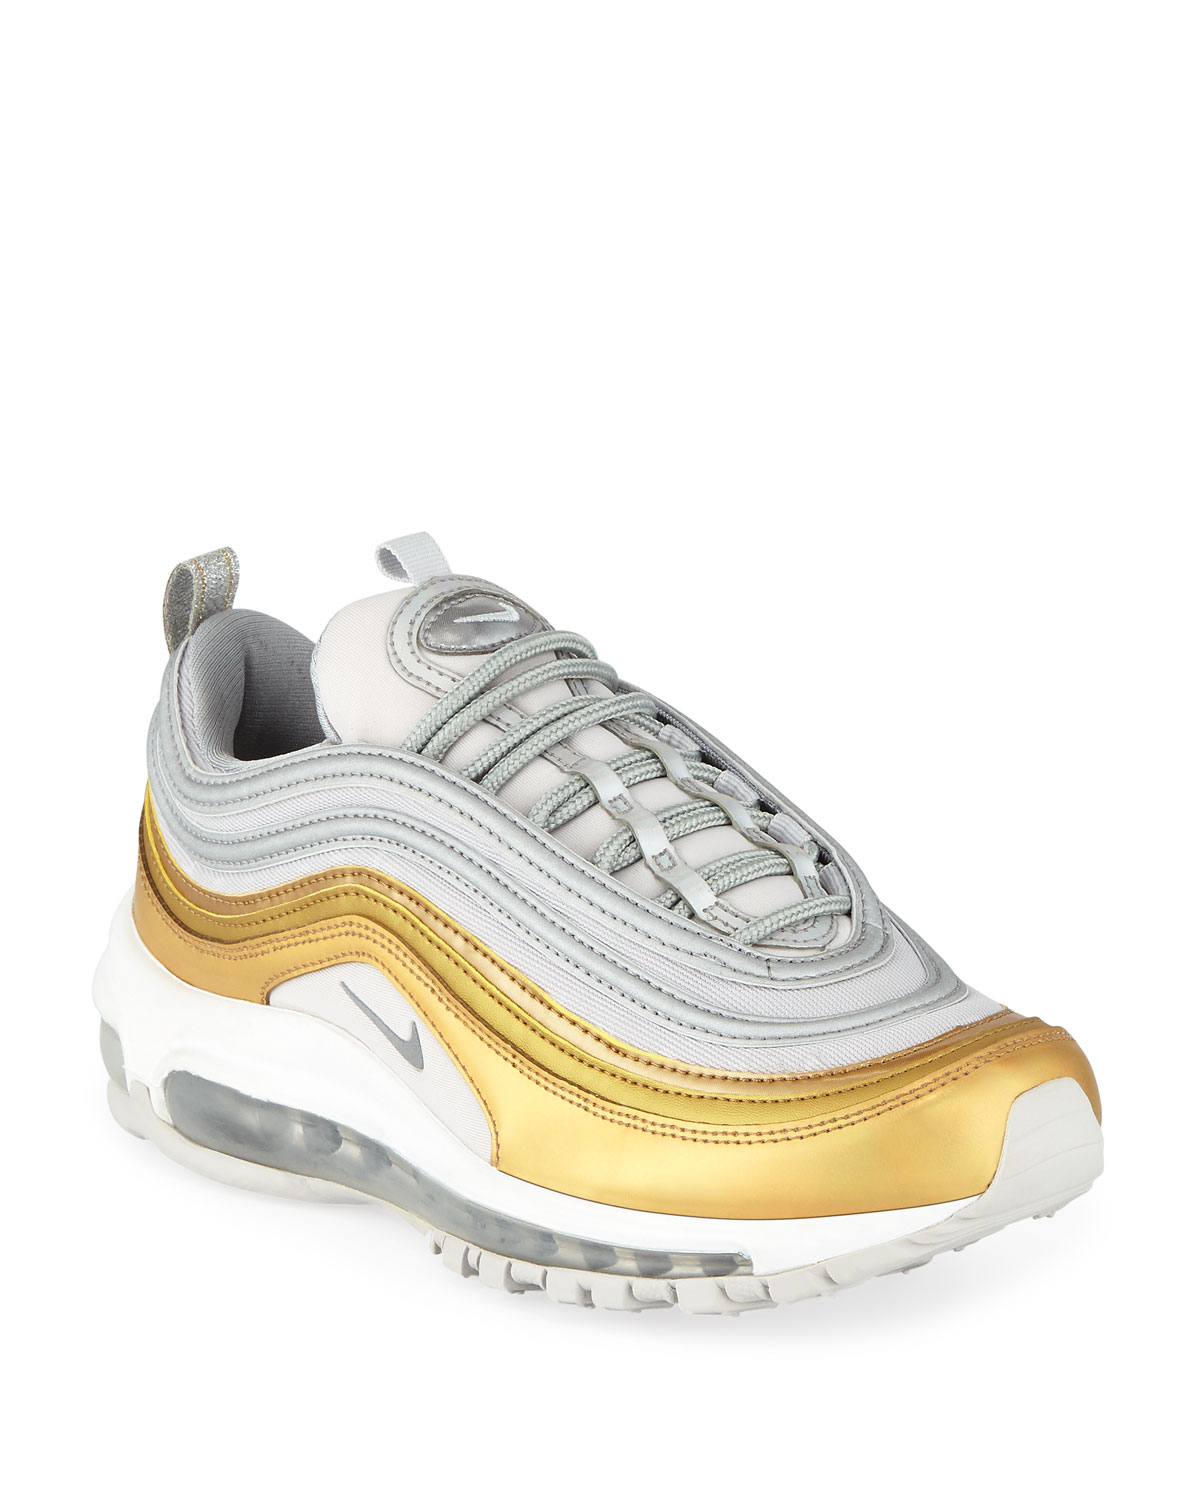 f36214b70ff6c2 Nike Air Max 97 Special Edition Sneakers